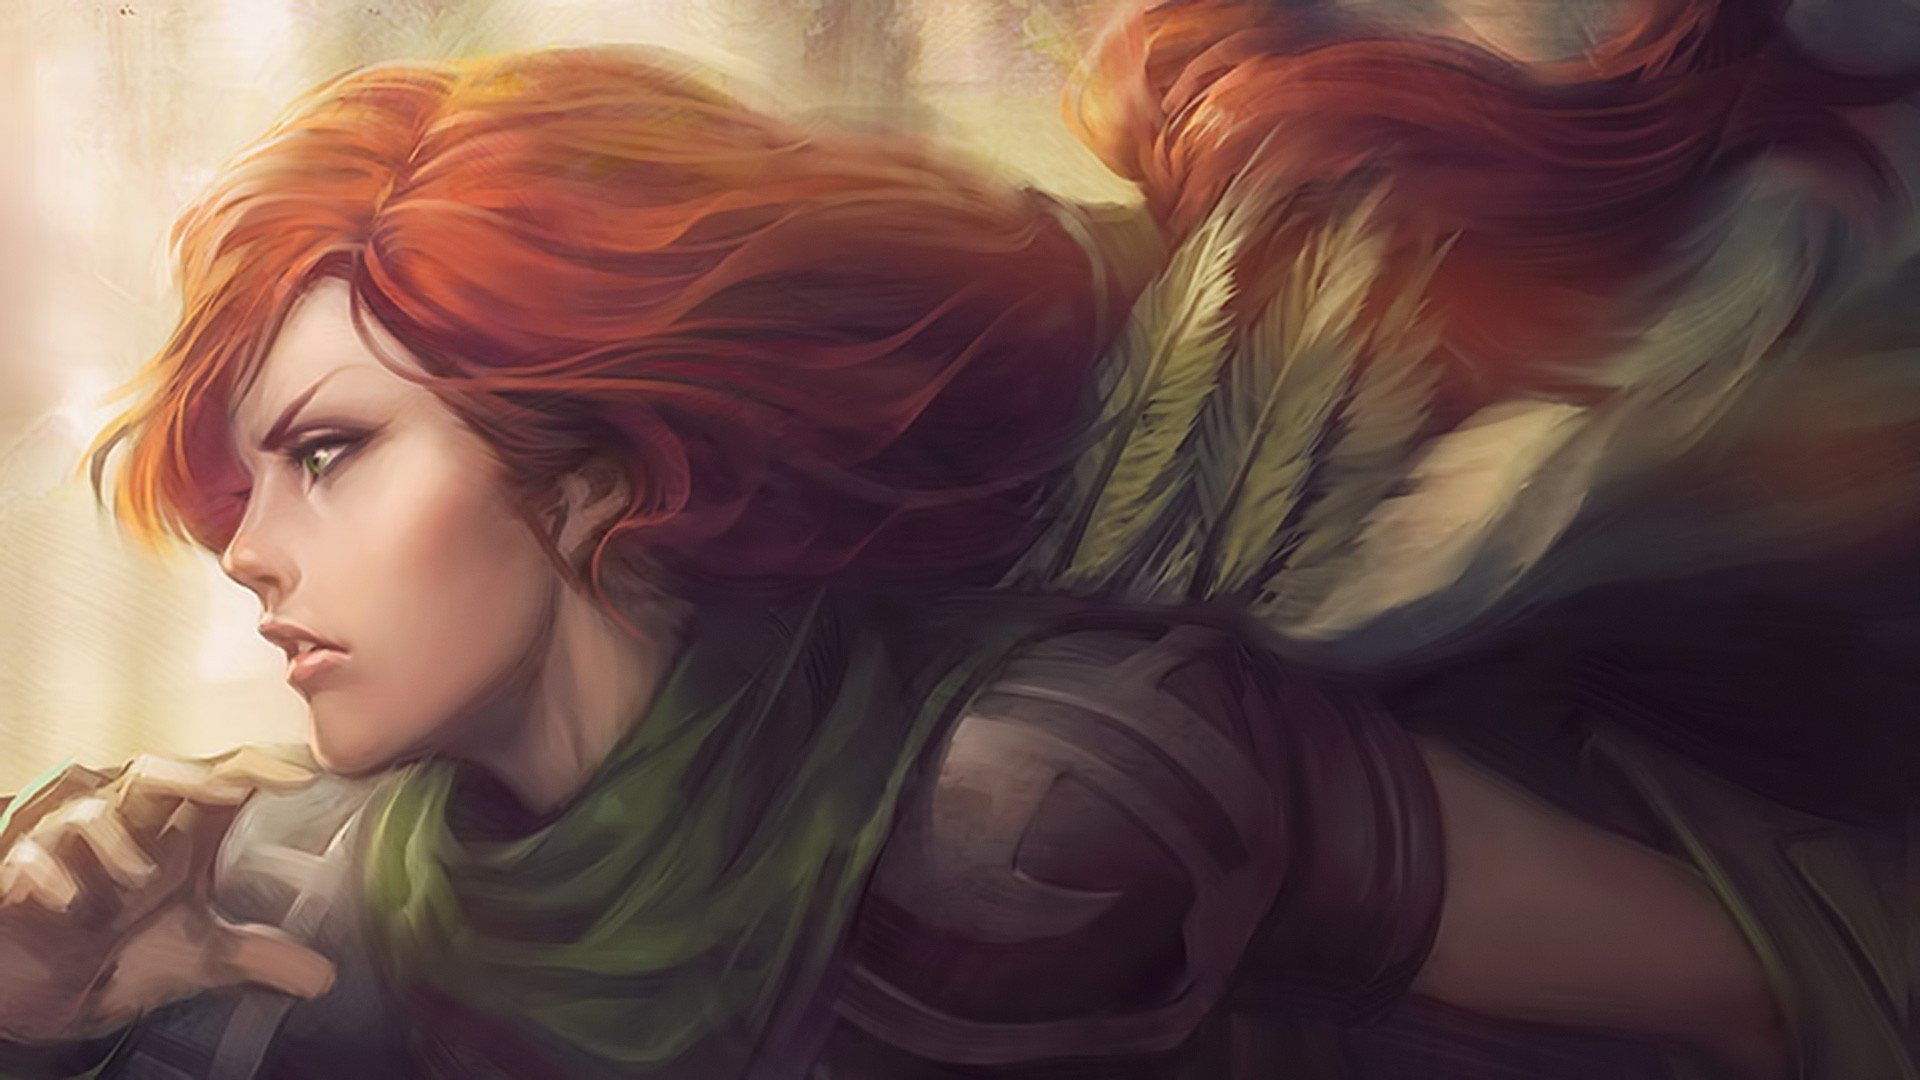 Dota 2 Windrunner Wallpaper Mobile Is Cool Wallpapers